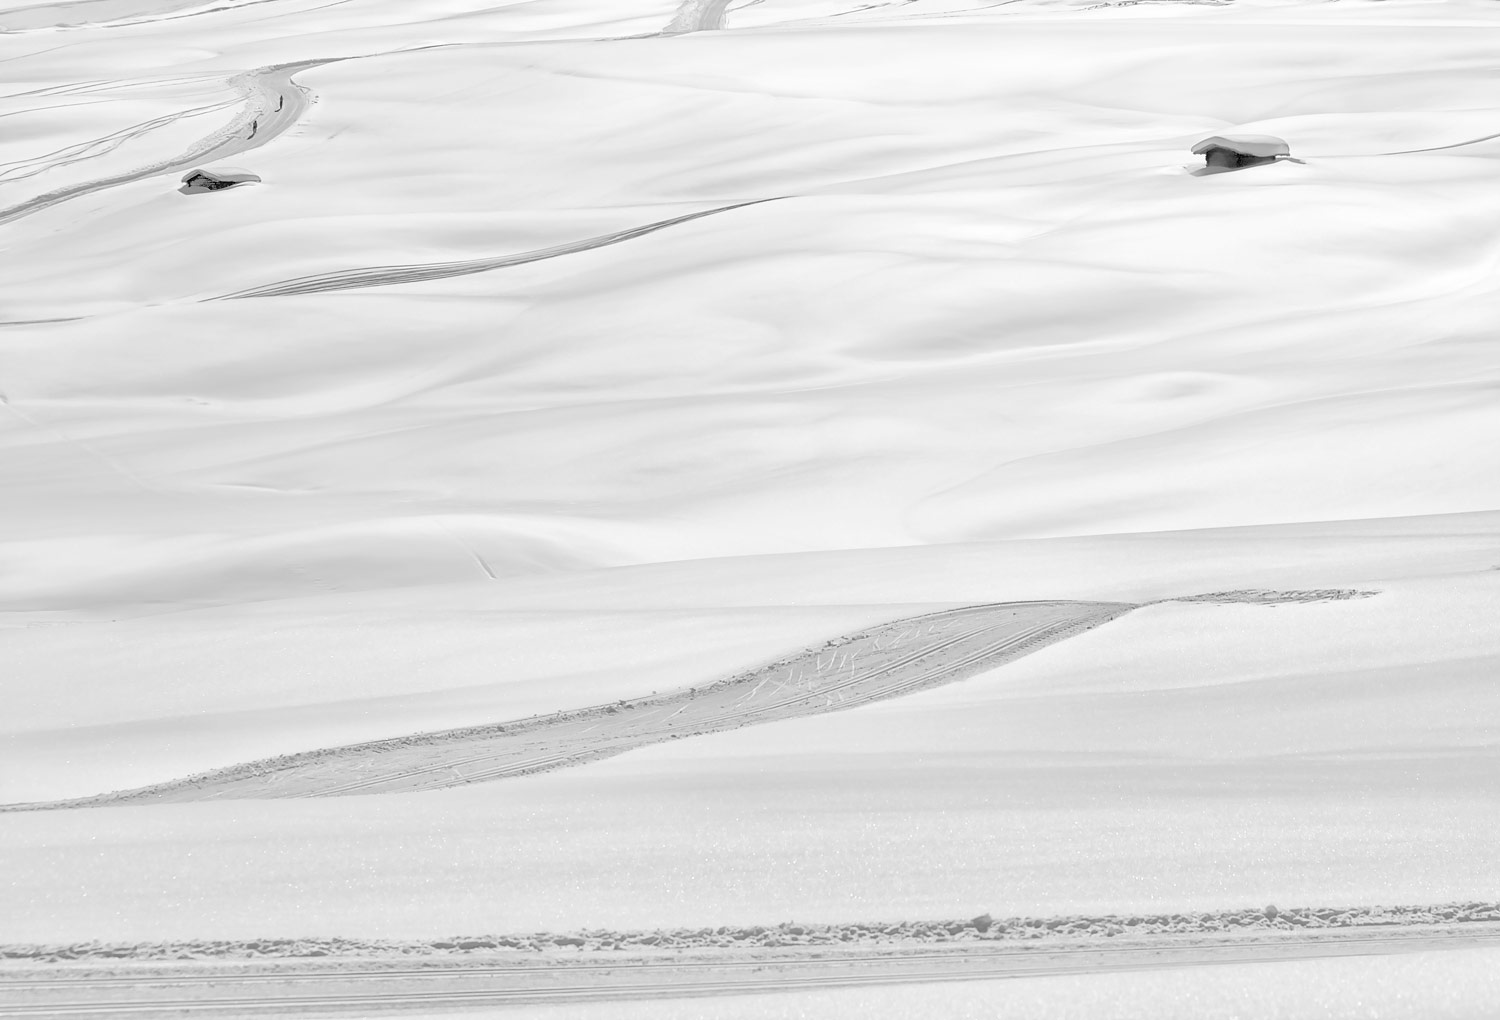 Snow Shapes #7, © Rosario CIVELLO, 1st Place, Non-Professional - Landscape and Nature, Zebra Awards - TZIPAC Black and White Photographer of the Year